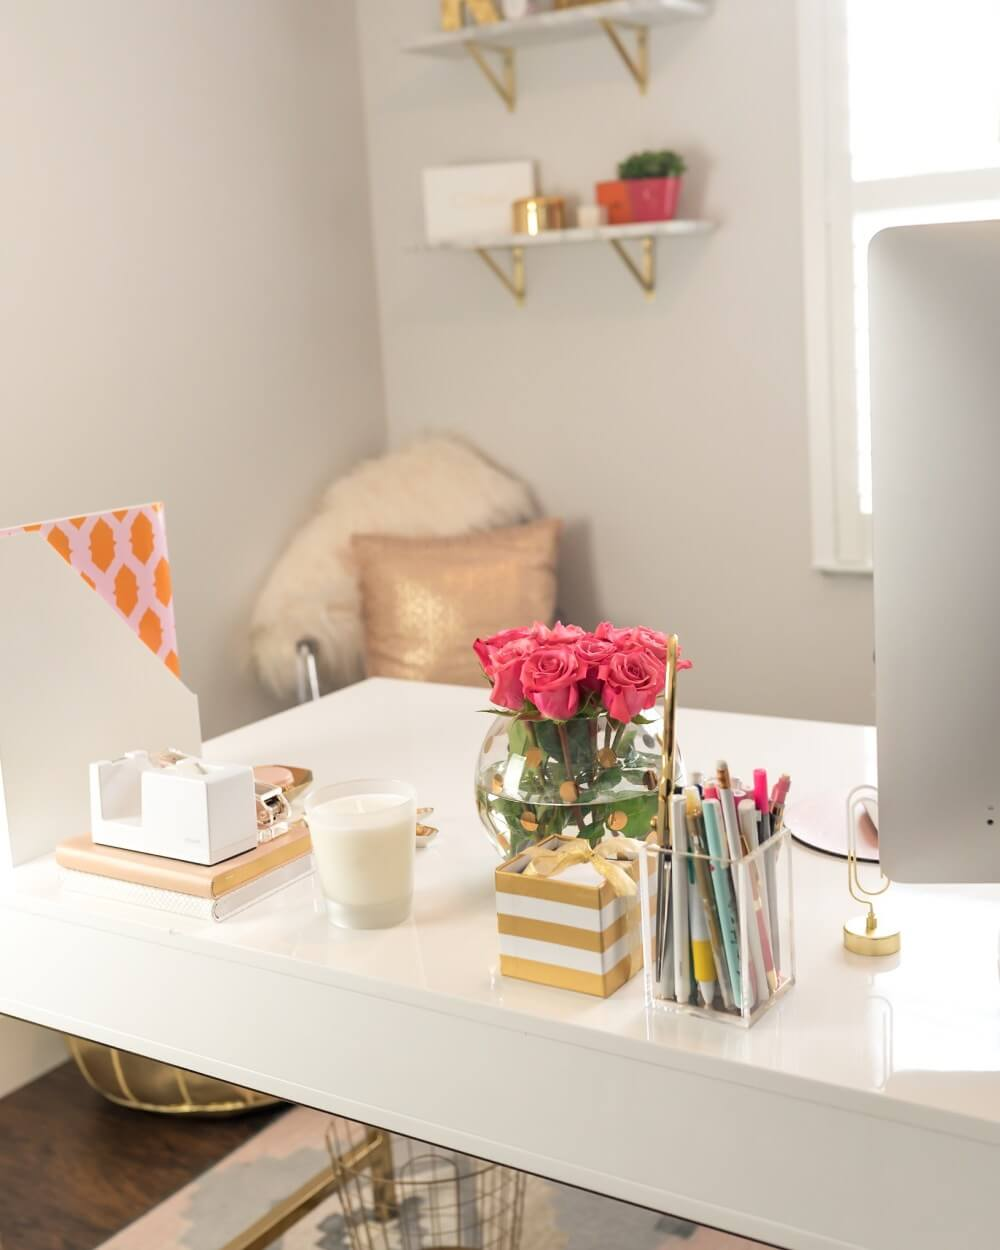 Modern Eclectic Desktop Storage and Fresh Flowers